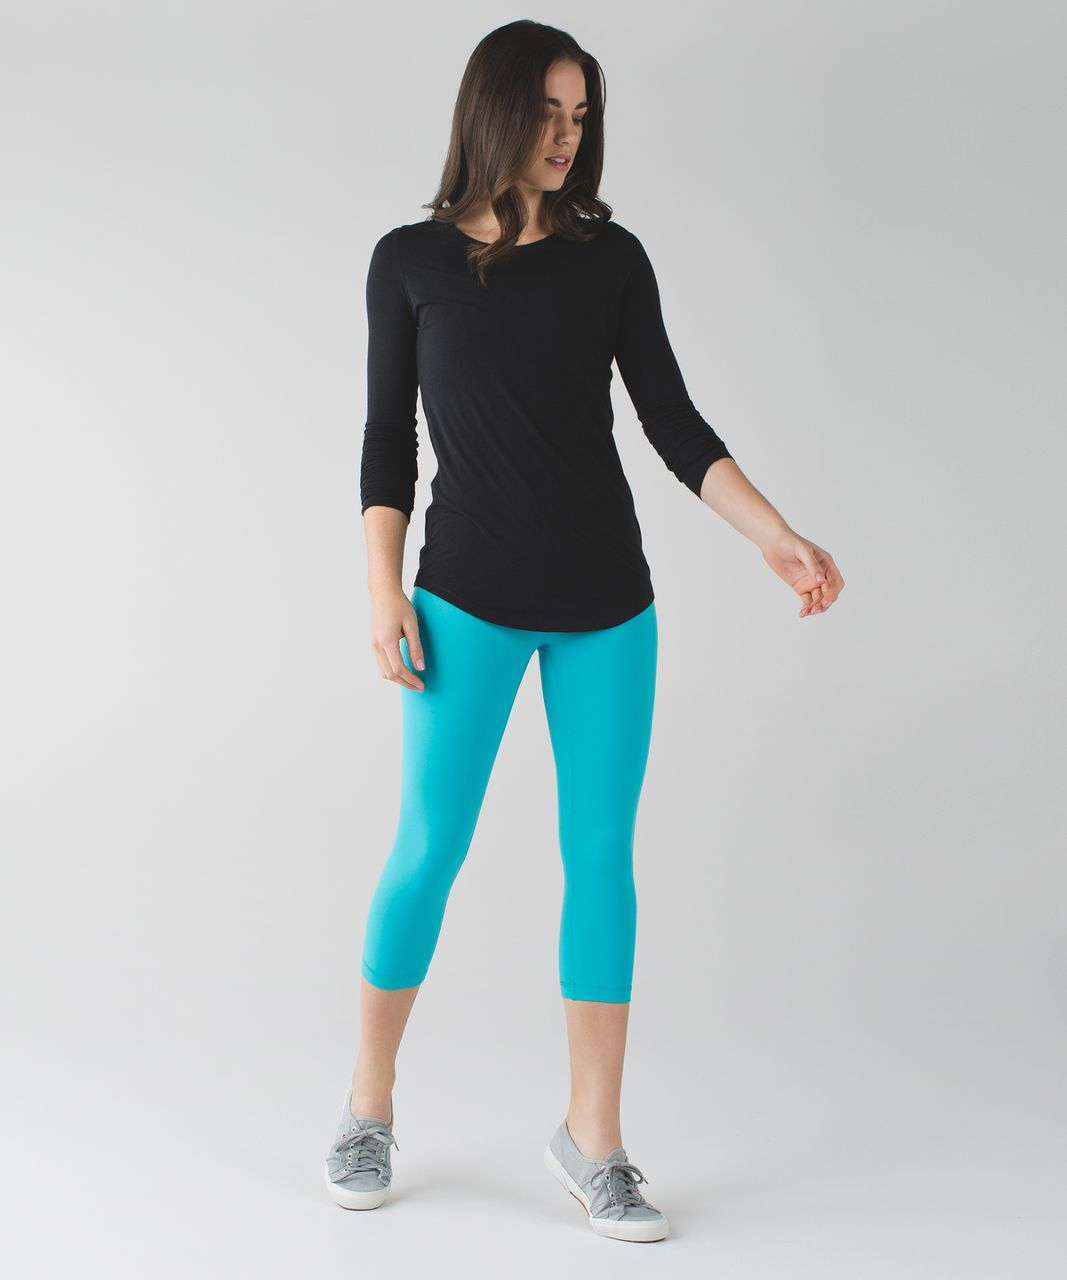 "Lululemon Wunder Under Crop III (21 1/2"") - Peacock Blue / White / Peacock Blue"